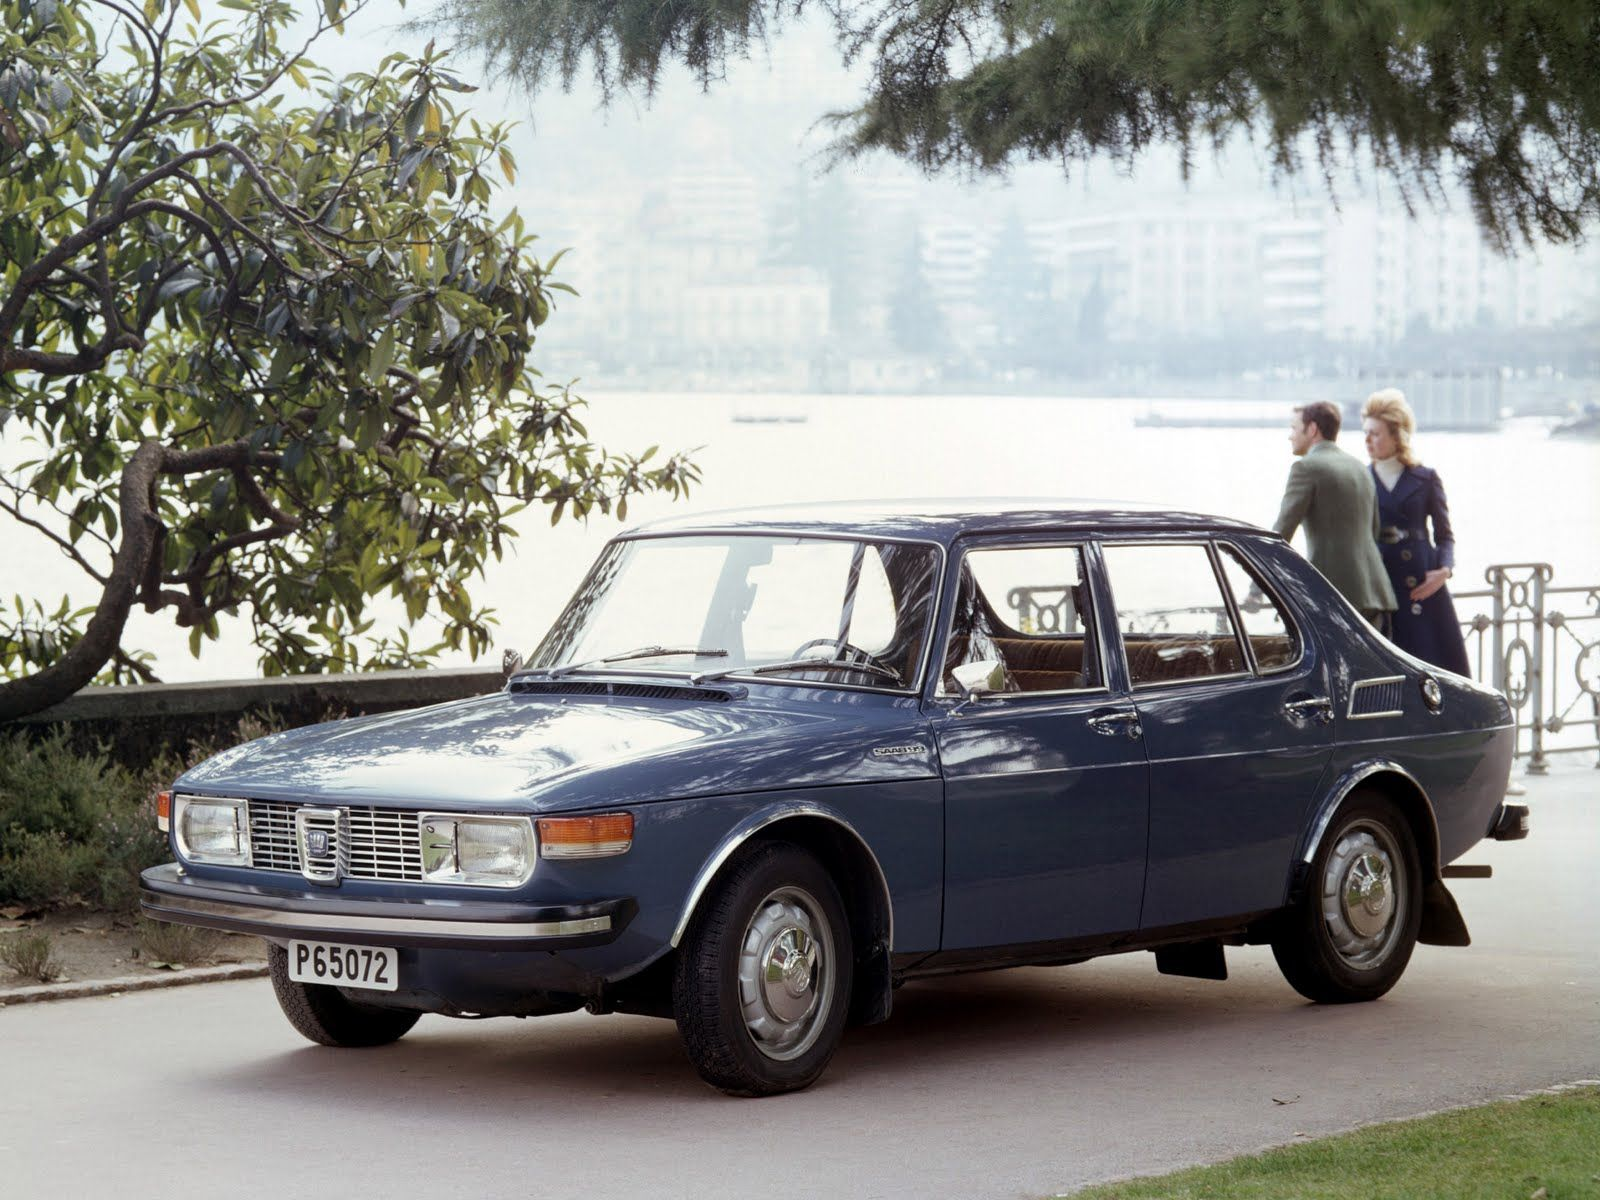 1972 Saab 99 E - My first 'real' car, not counting the Buick jalopy. Took it on at least 5 cross country trips. Sadly it was totaled in 1976 when I was rear ended while stopped at a red light on Broadway and 77th.